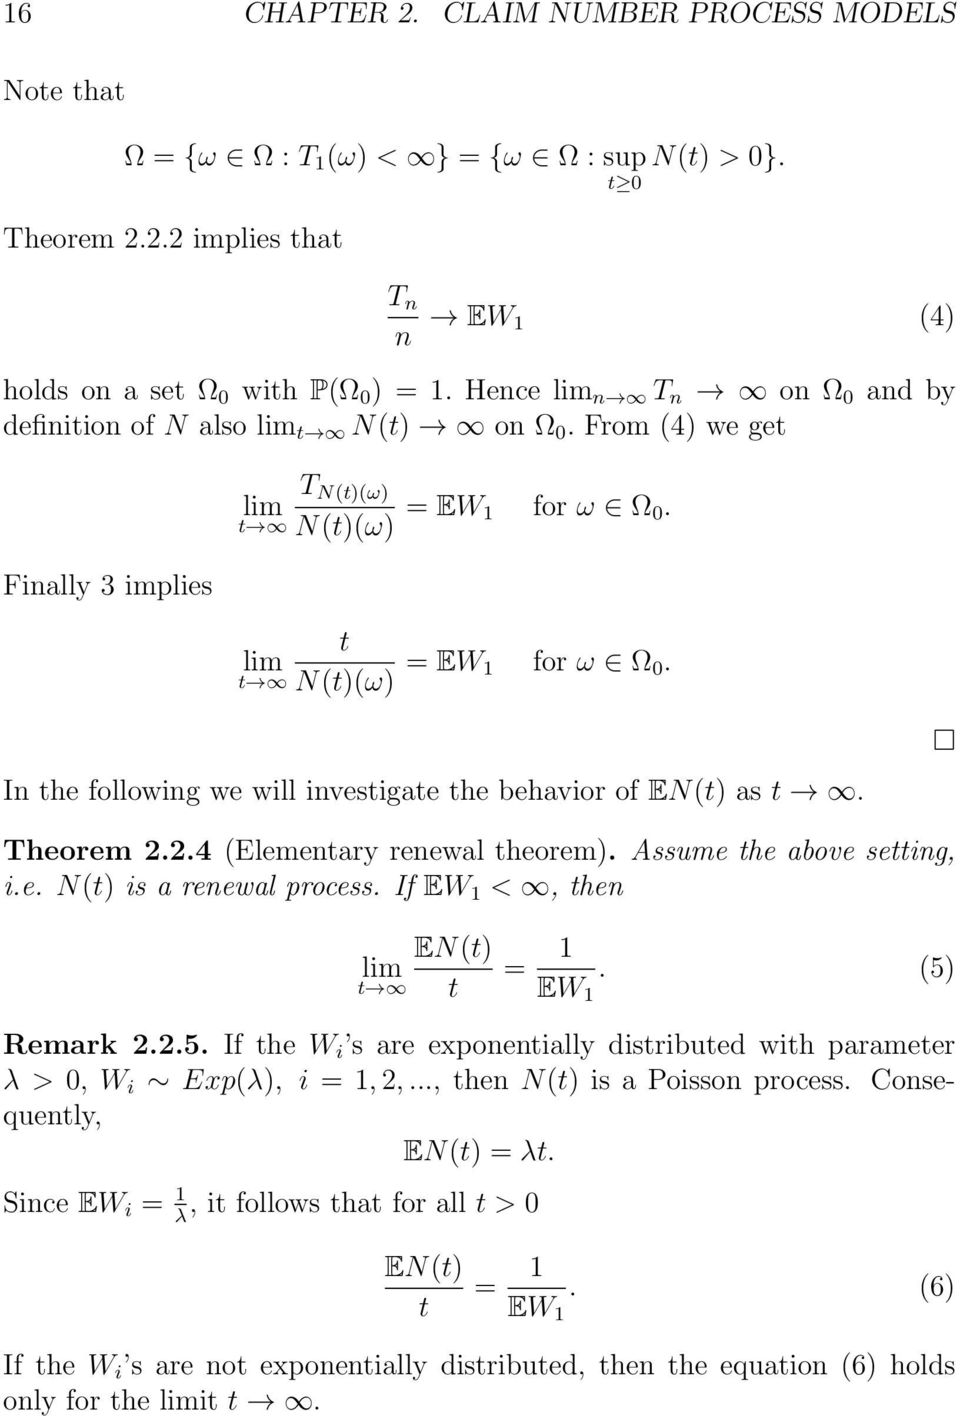 In the following we will investigate the behavior of EN(t) as t. Theorem 2.2.4 (Elementary renewal theorem). Assume the above setting, i.e. N(t) is a renewal process.